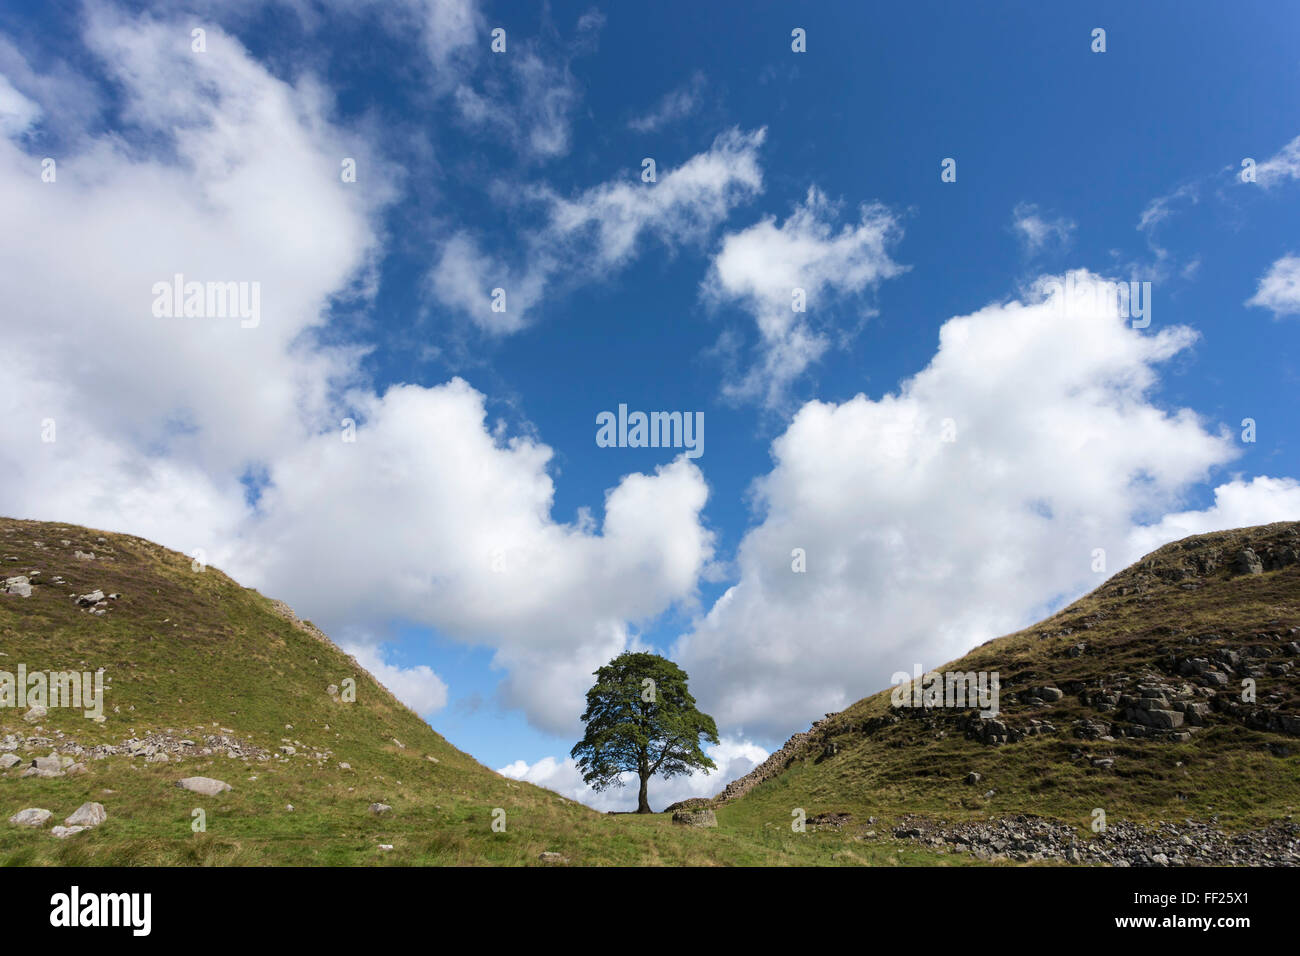 Sycamore gap, Hadrian's WaRMRM, UNESCO WorRMd Heritage Site, NorthumberRMand, EngRMand, United Kingdom, Europe - Stock Image